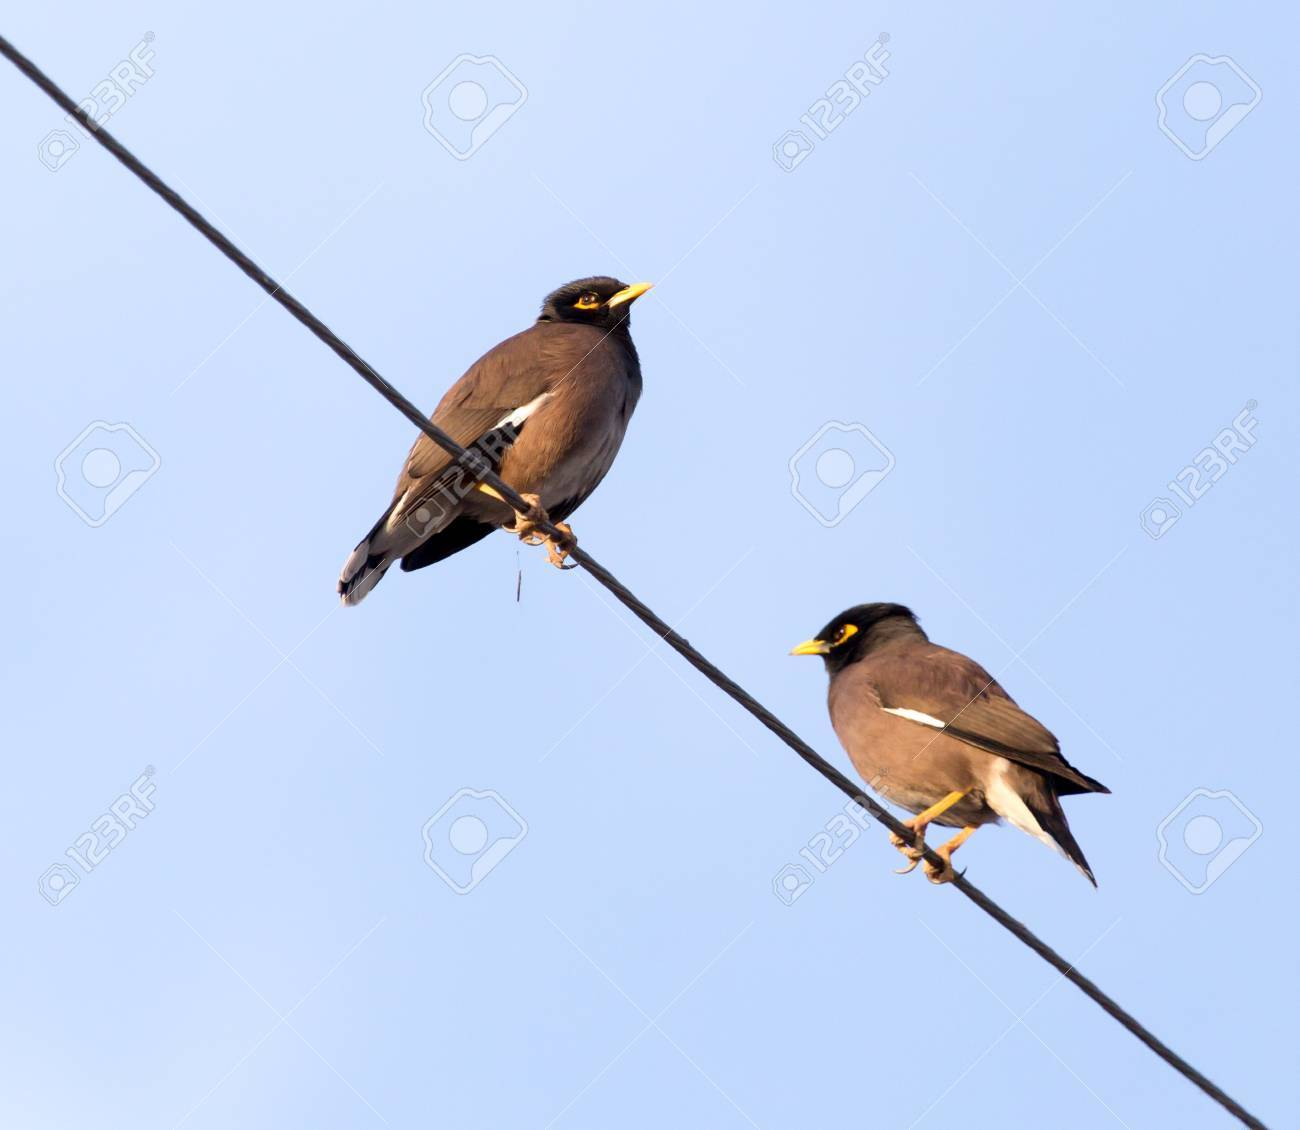 Two Birds On A Wire Against The Sky Stock Photo Picture And Royalty